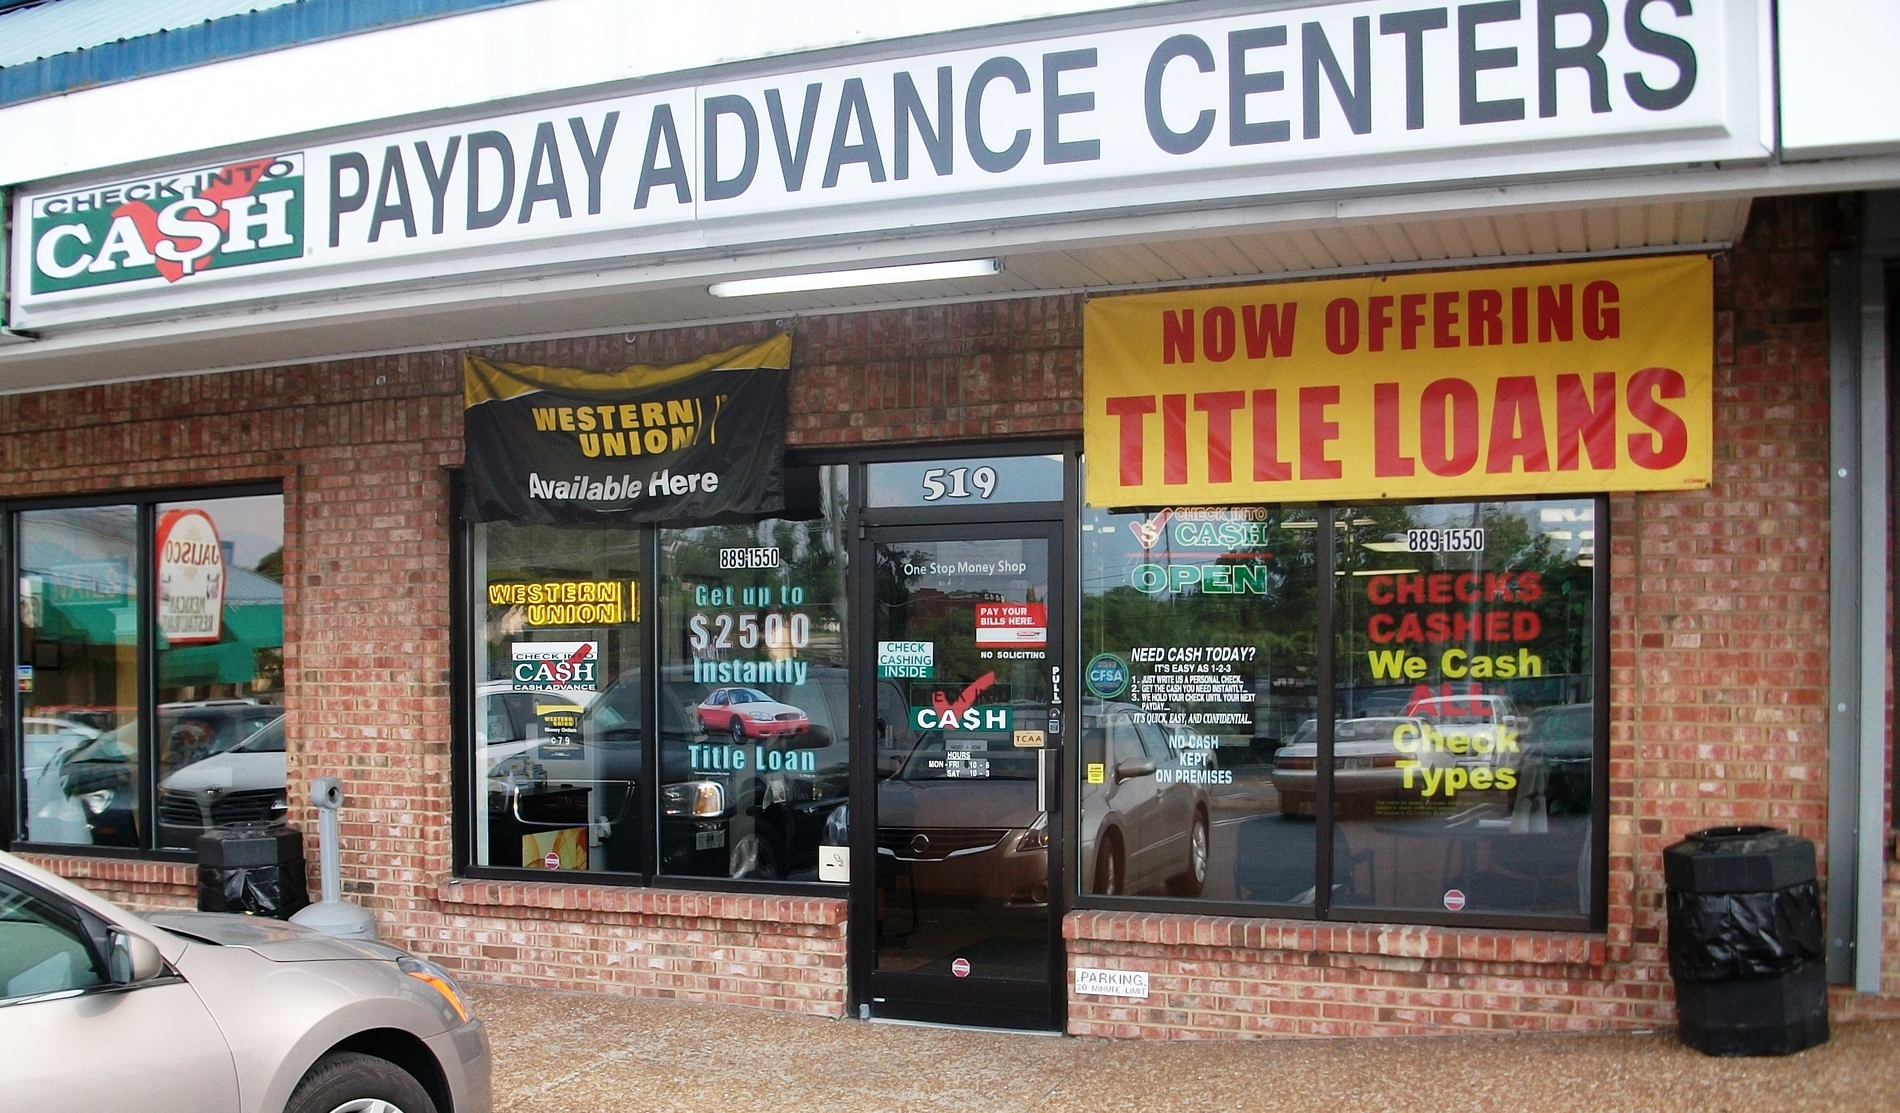 Payday loan for 100 dollars picture 7